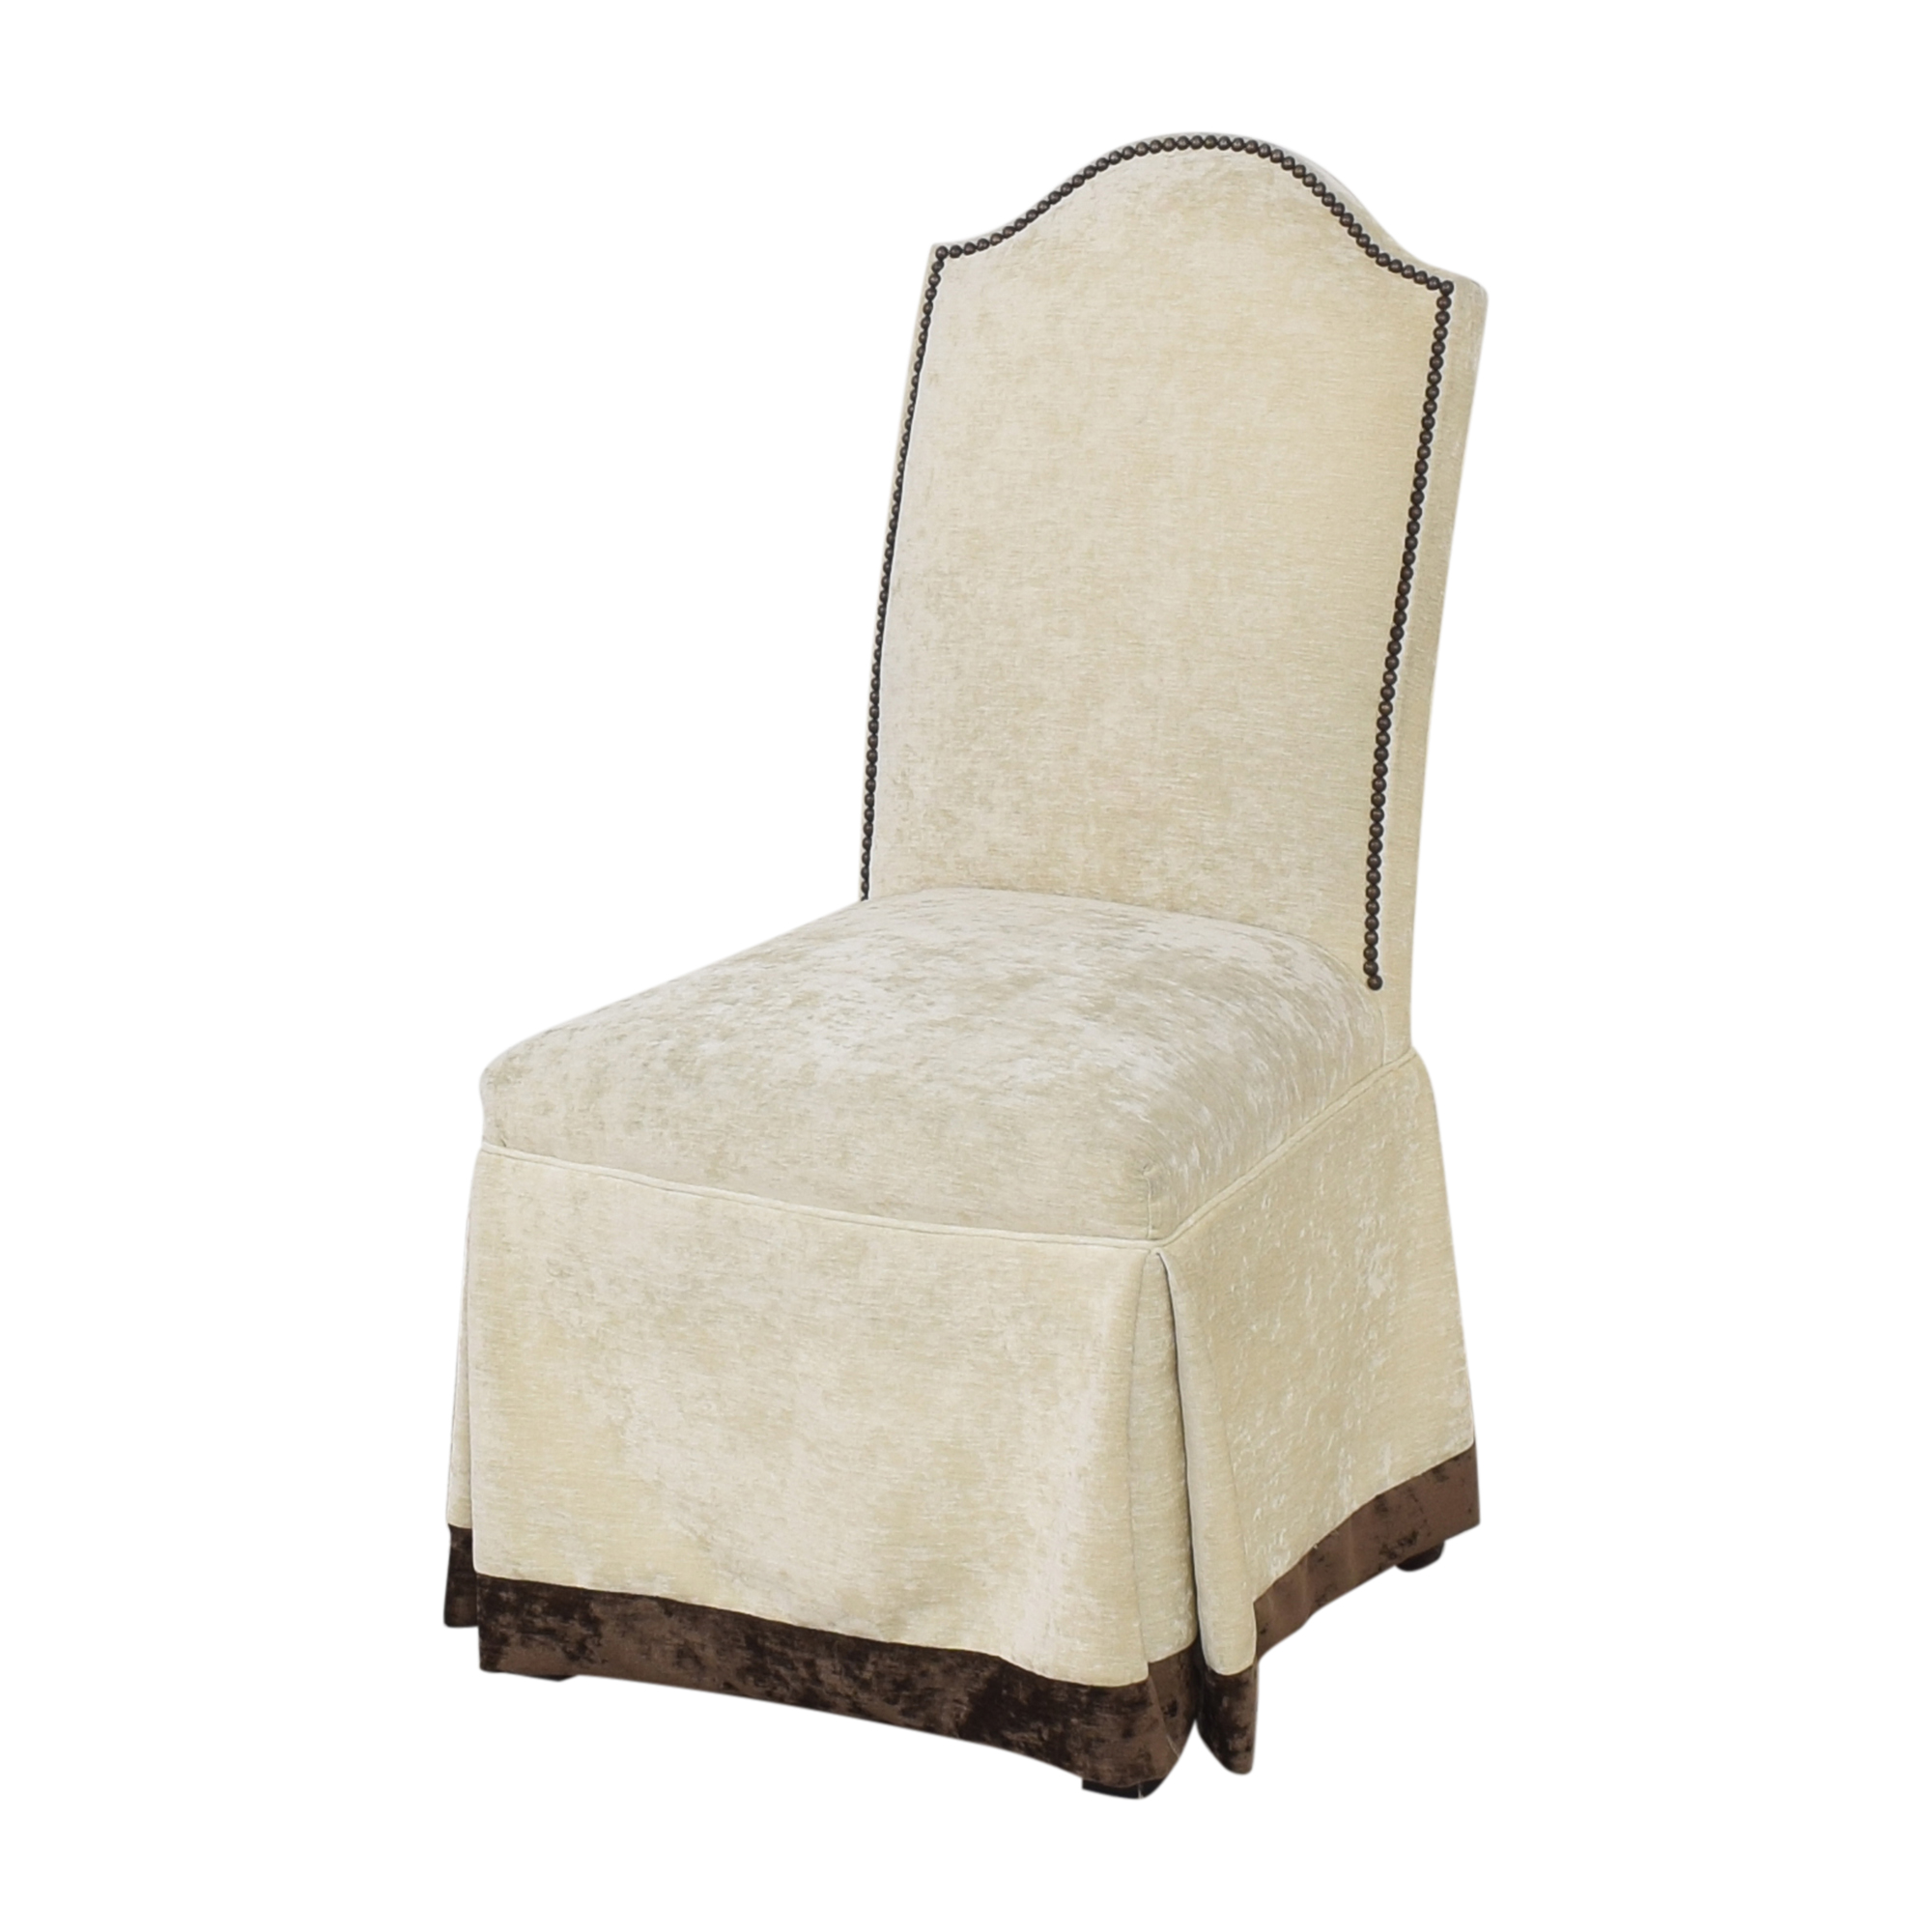 Designmaster Furniture Designmaster Furniture Custom Upholstered Dining Chairs used